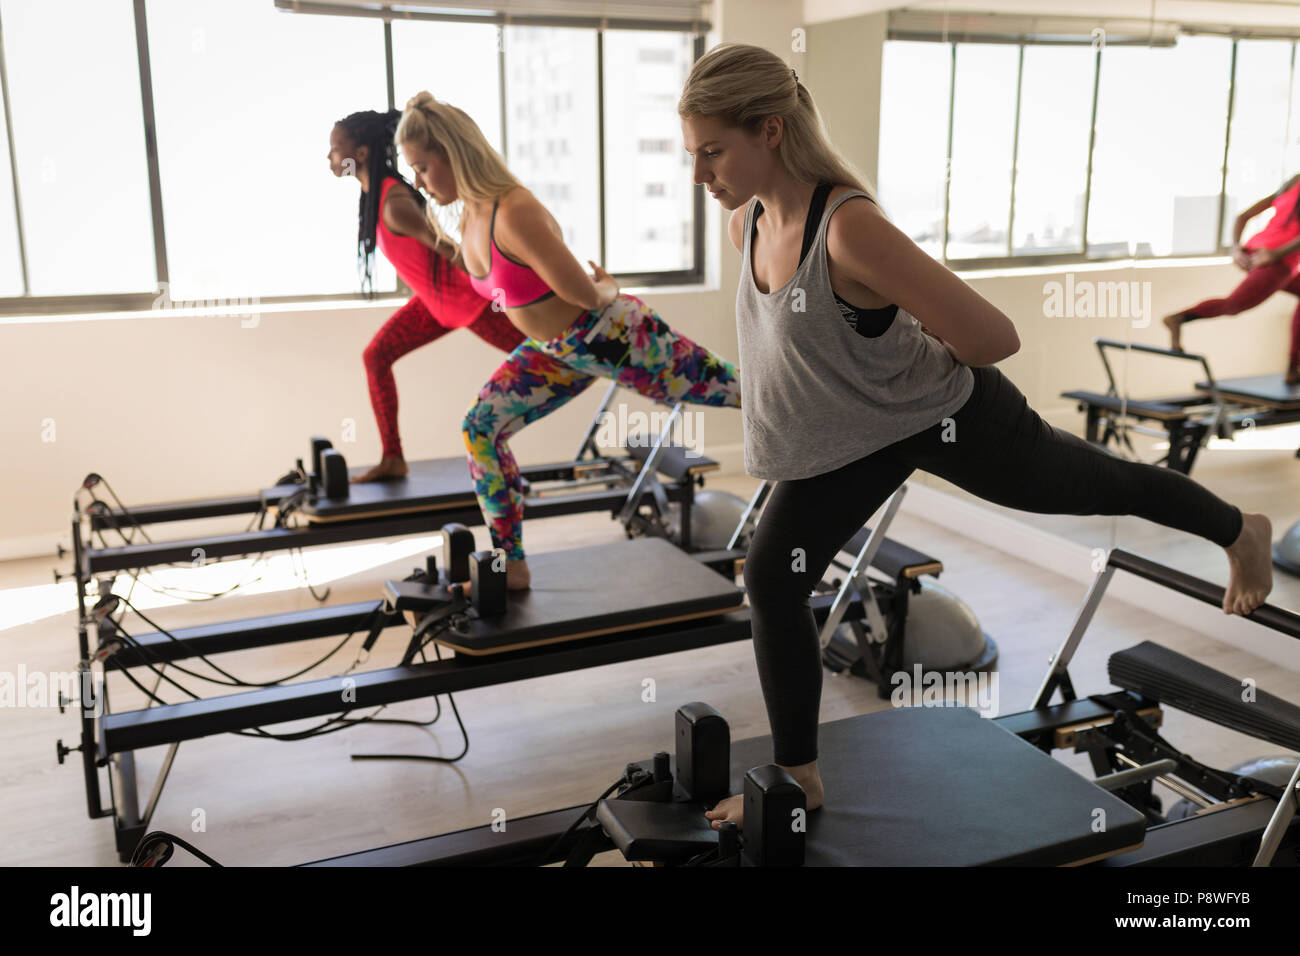 Group of women exercising on stretching machine - Stock Image